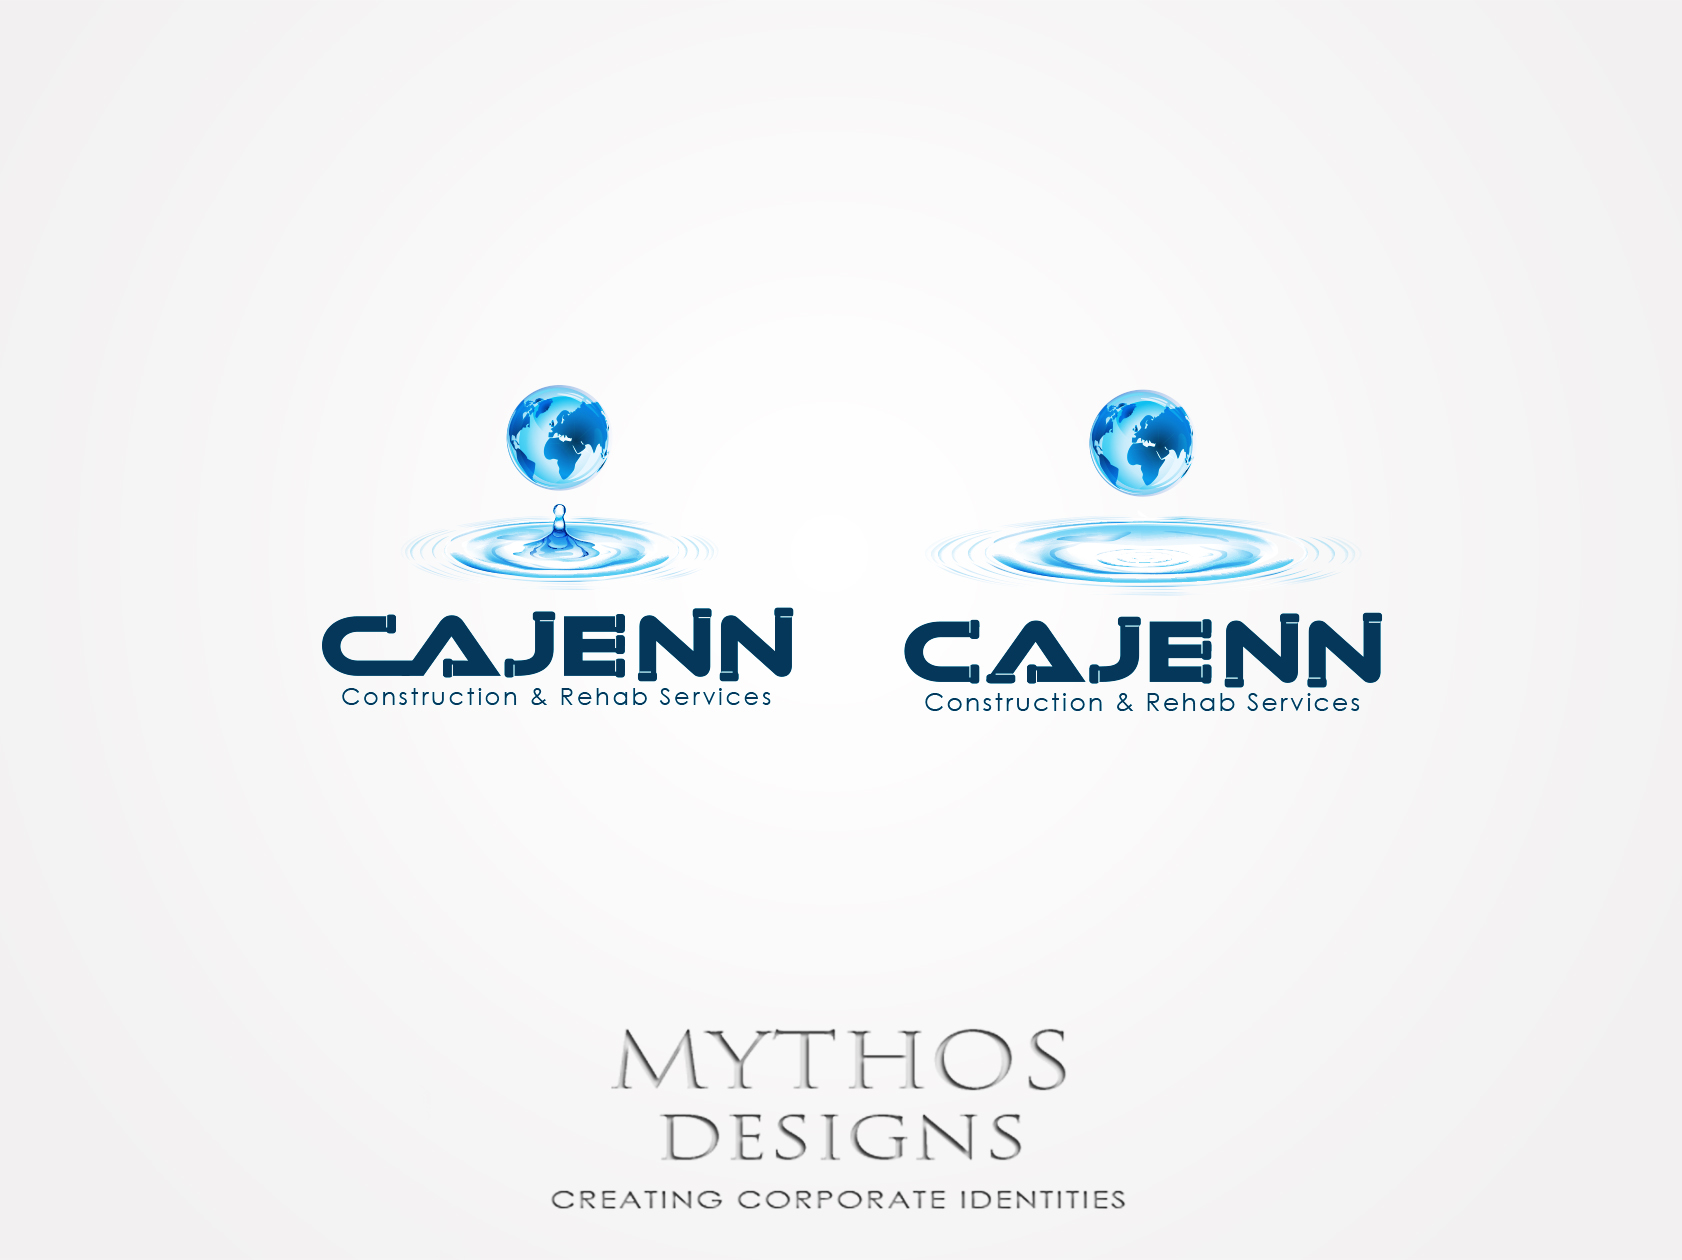 Logo Design by Mythos Designs - Entry No. 60 in the Logo Design Contest New Logo Design for CaJenn Construction & Rehab Services.